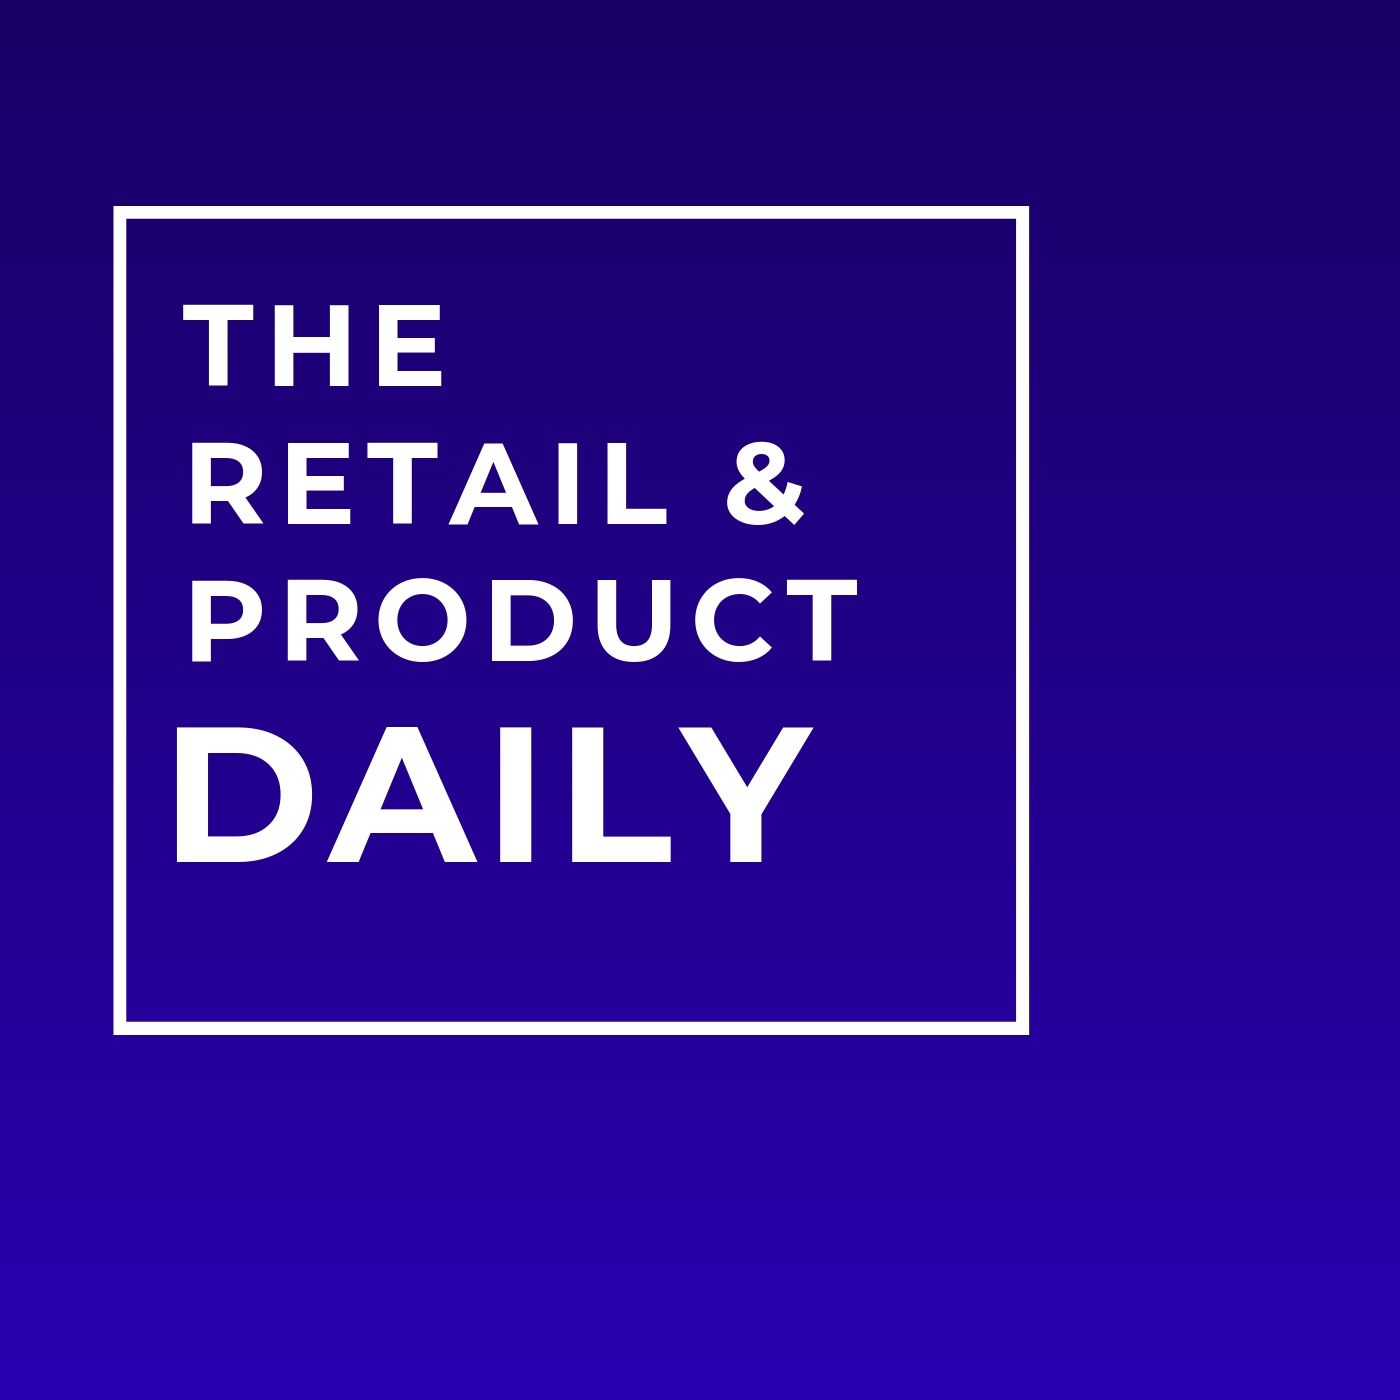 Retail, product and fashion daily news business podcast.jpg